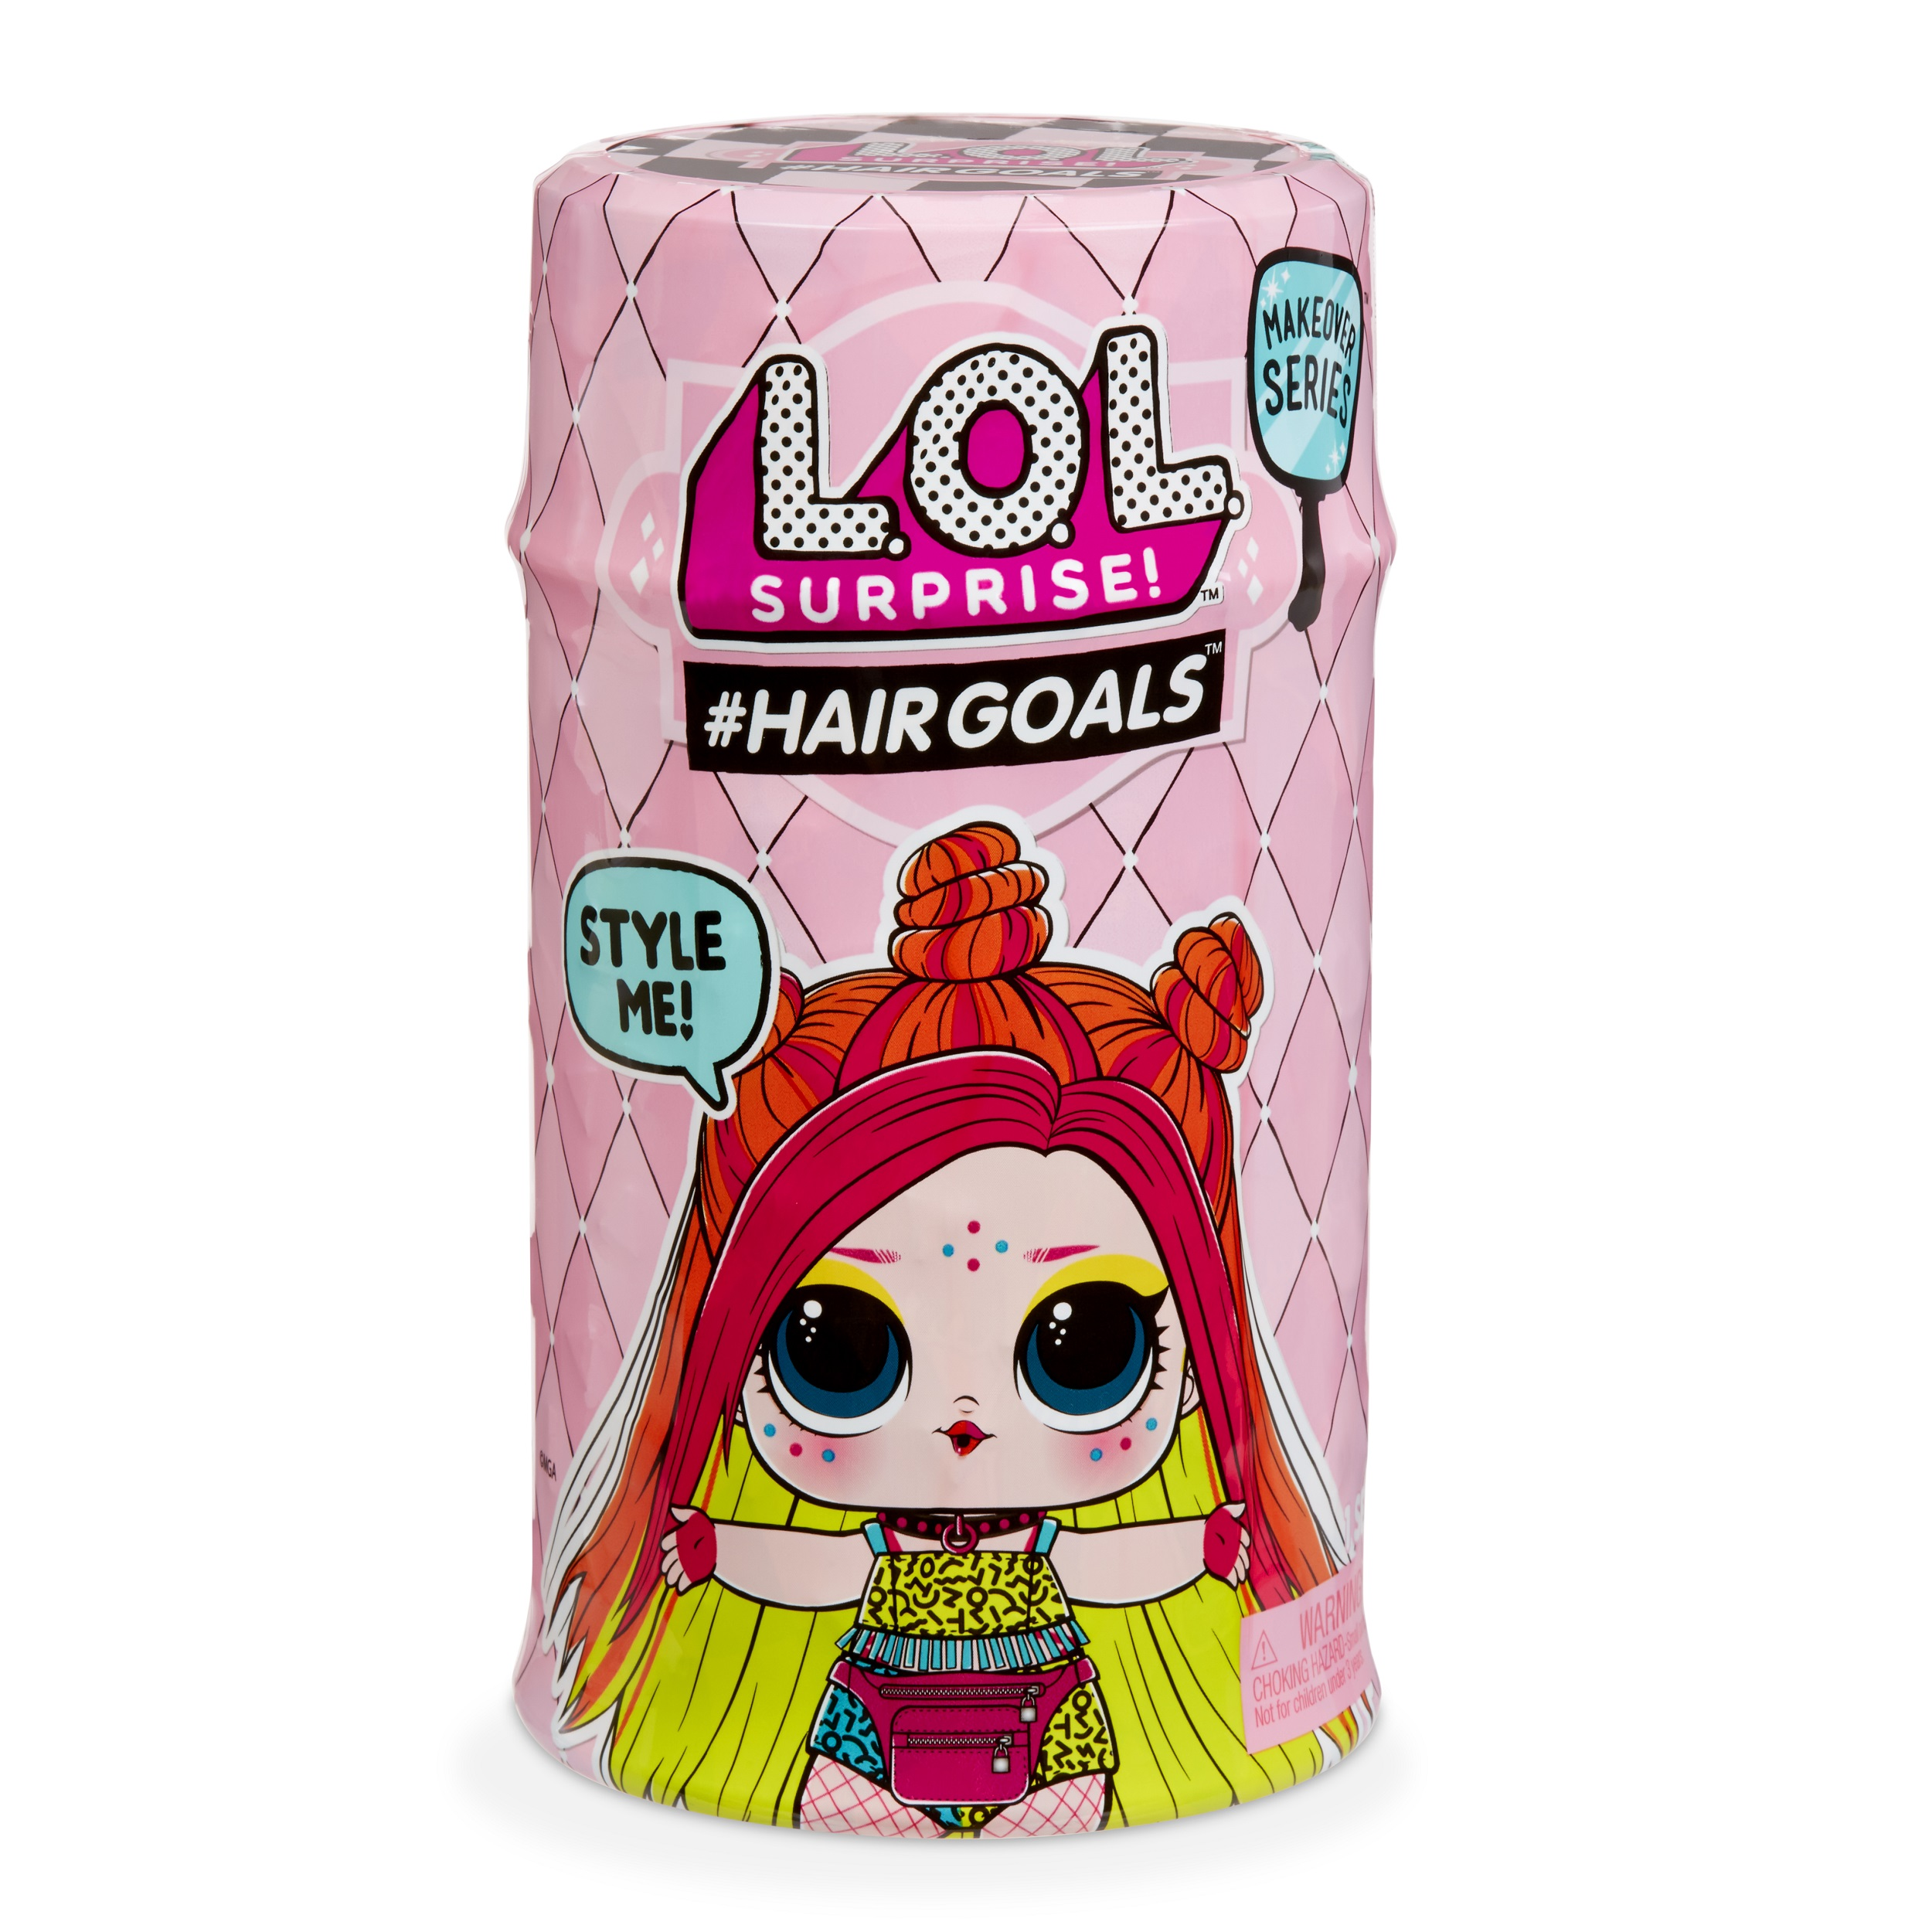 1 LOL Surprise! Hairgoals Makeover Series WAVE 2 Big Sister Doll In Hand